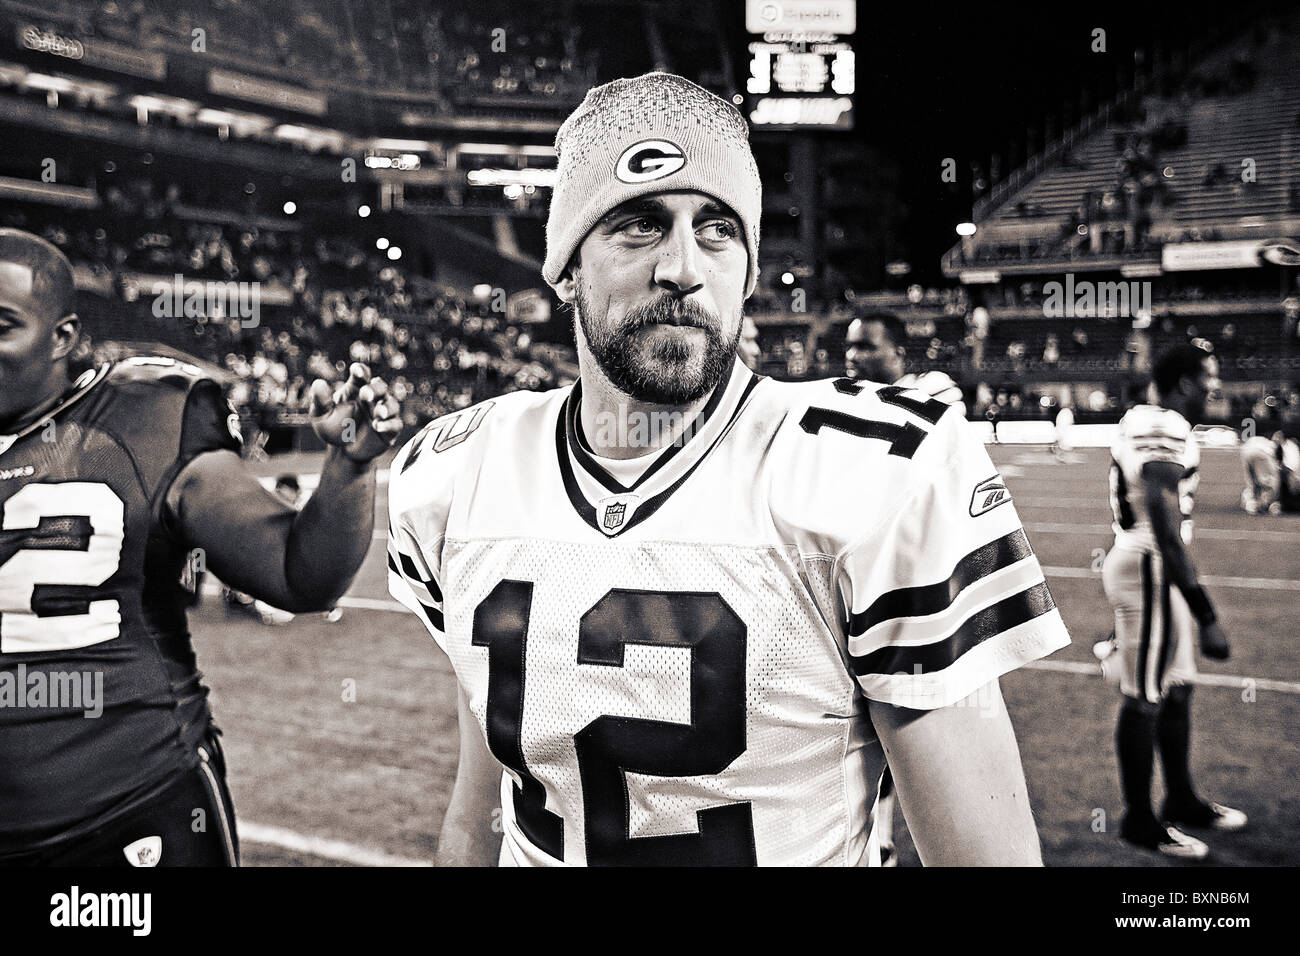 Aaron Rodgers on the field after a football game - Stock Image